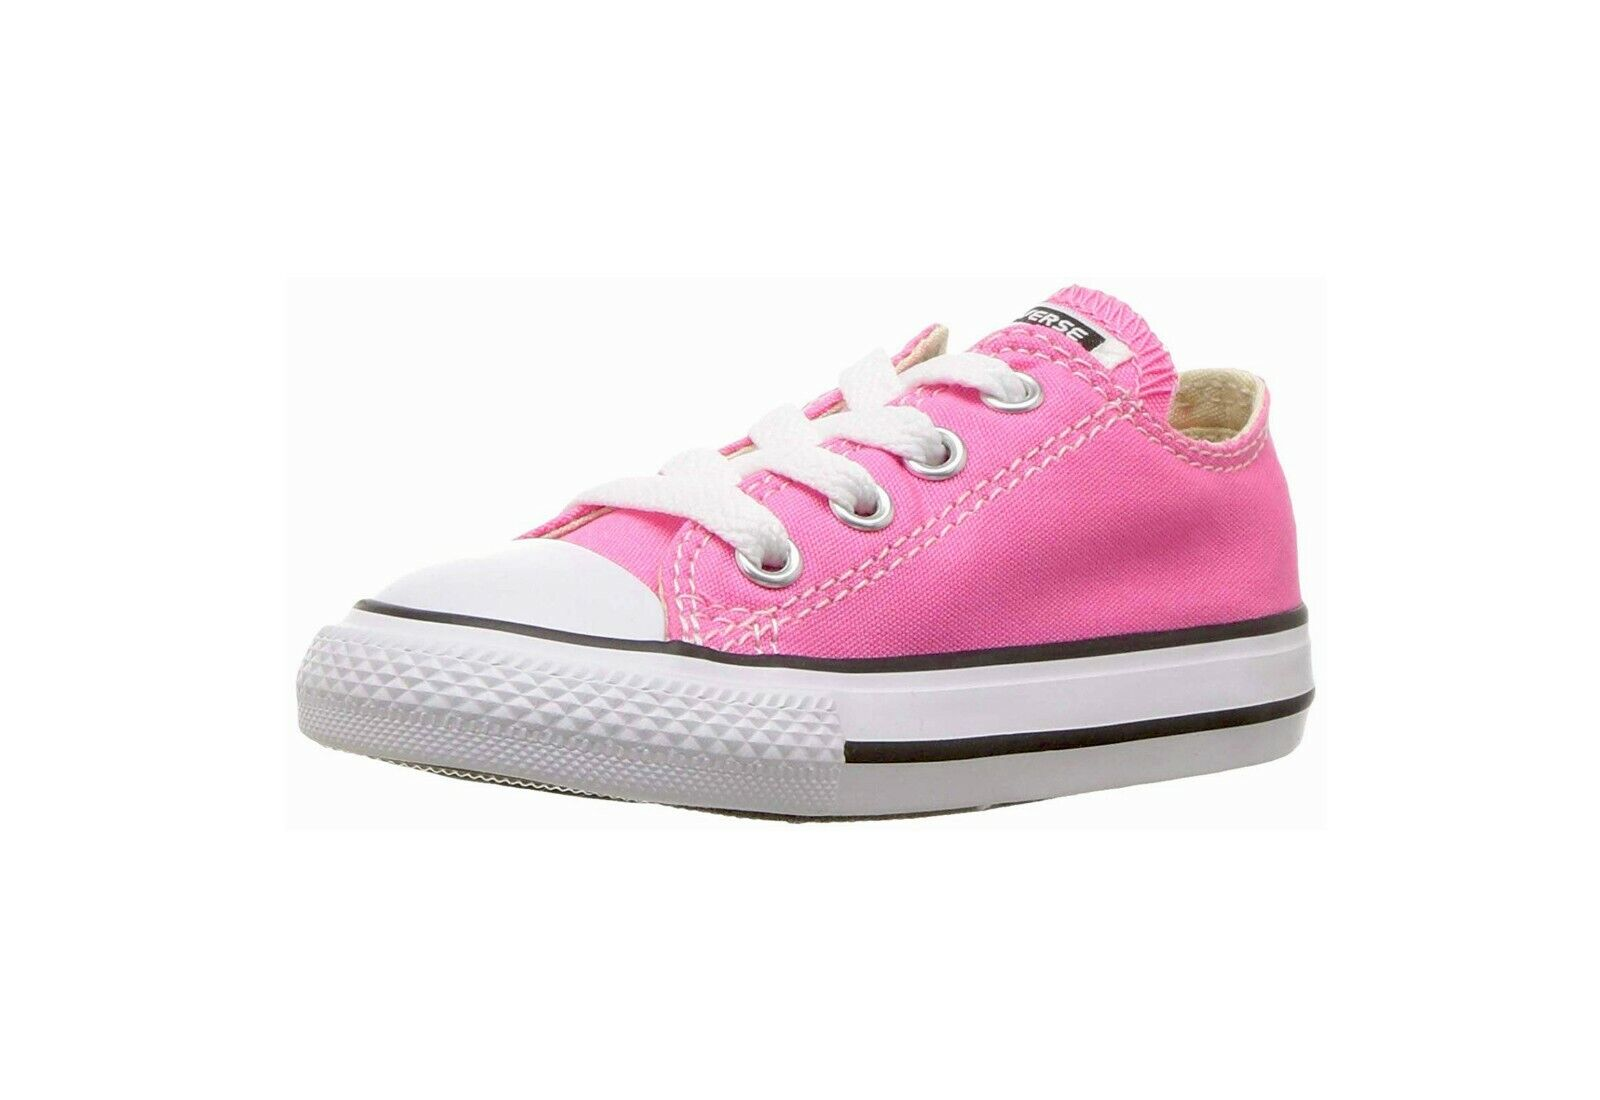 Converse All Star Low Top Canvas Chuck Taylor Infant Shoes For Girls 7J238